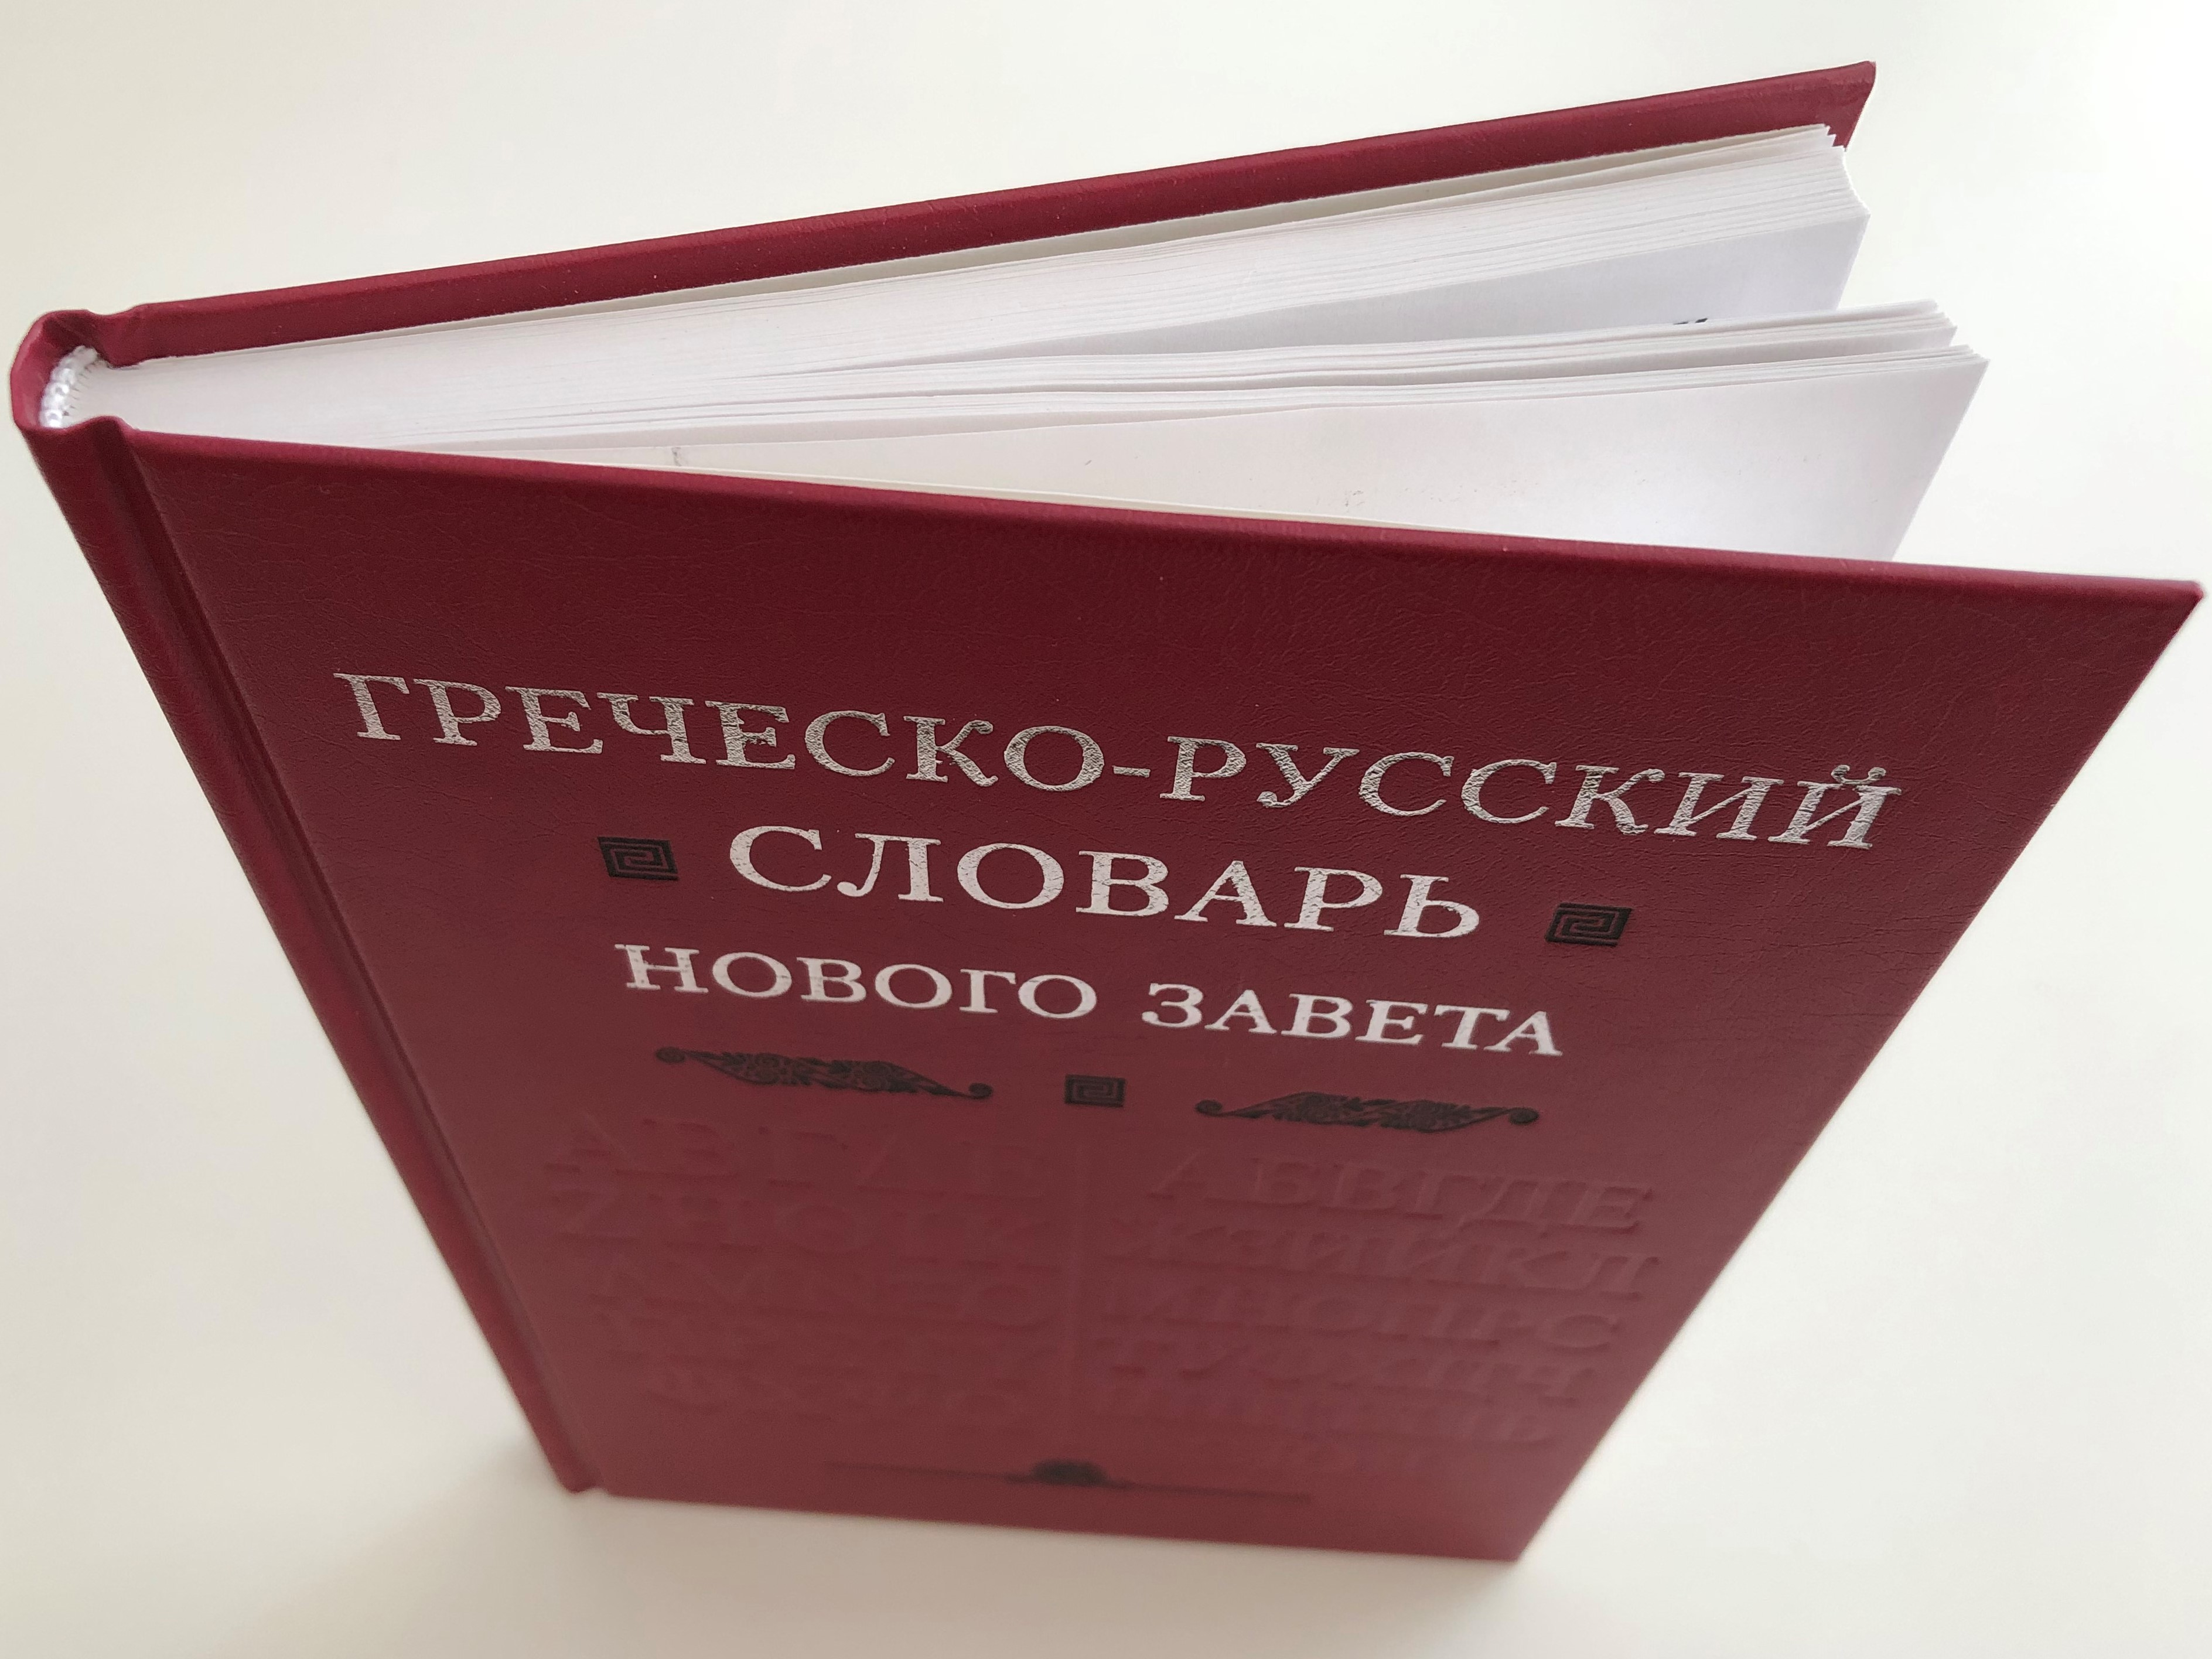 greek-russian-dictionary-of-the-new-testament-russian-translation-of-a-concise-greek-english-dictionary-of-the-new-testament-by-barkley-m.-newman-hardcover-200-russian-bible-society-4325424-.jpg